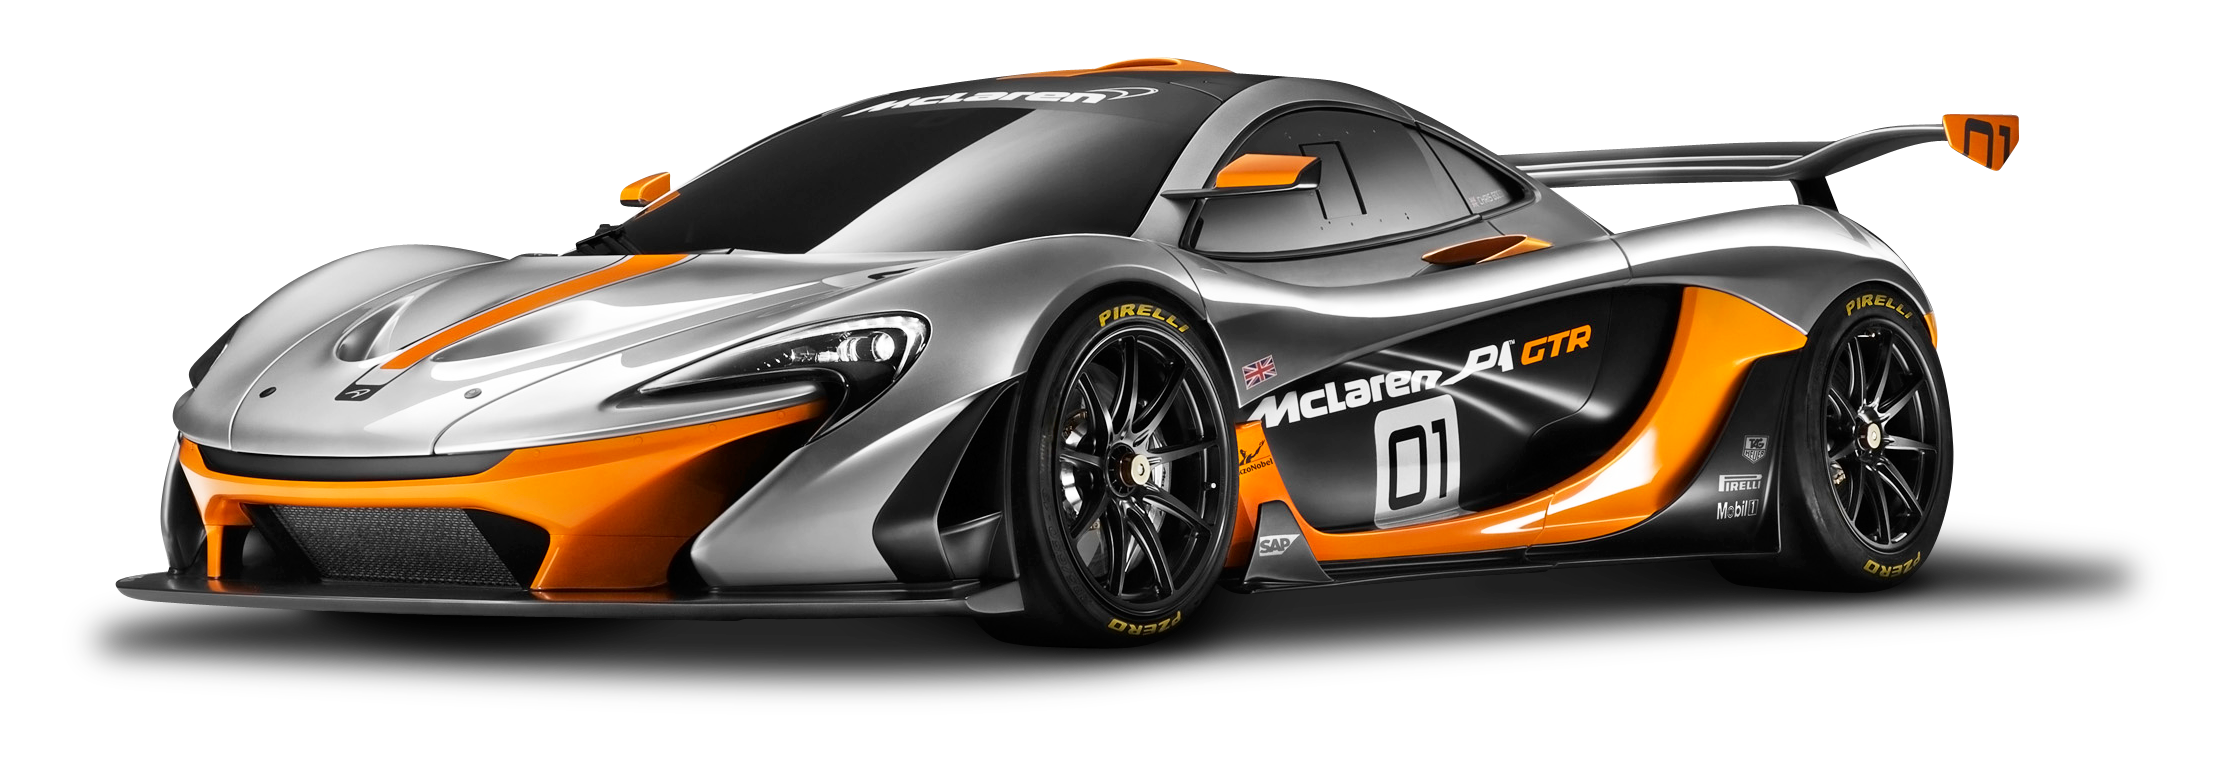 Race clipart racing background. Mclaren p gtr car